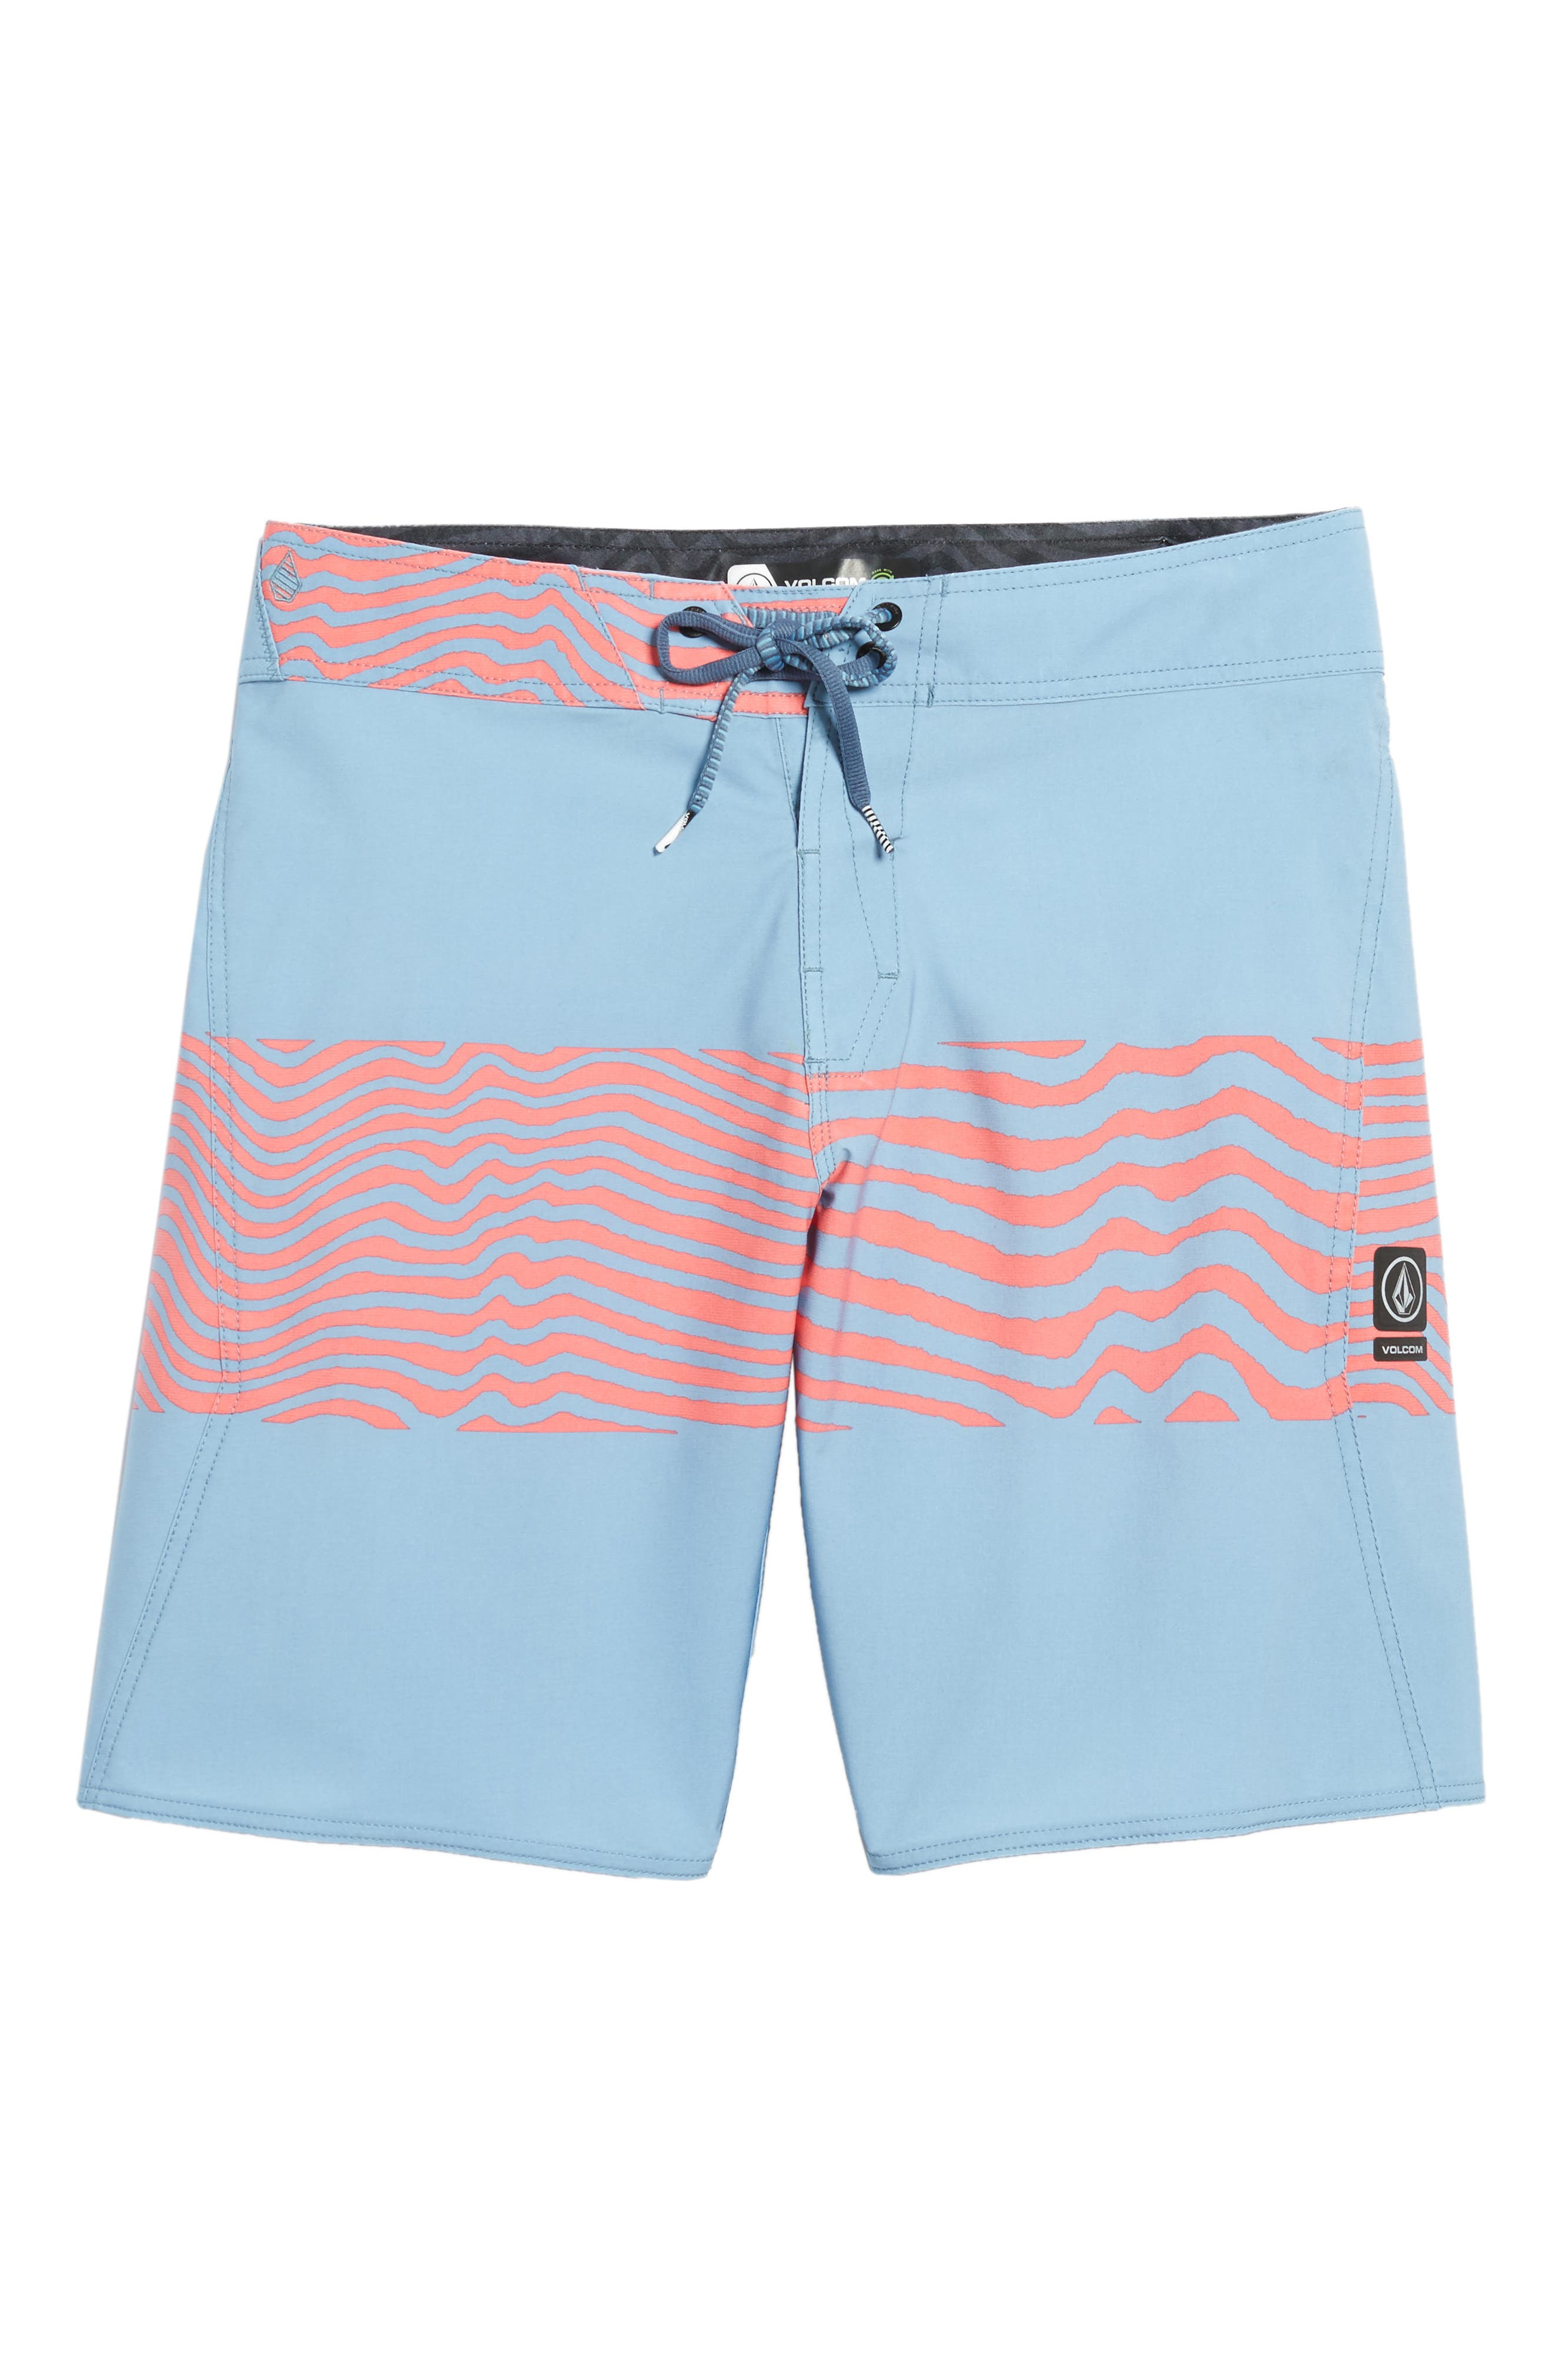 Macaw Faded Mod Board Shorts,                             Alternate thumbnail 6, color,                             499